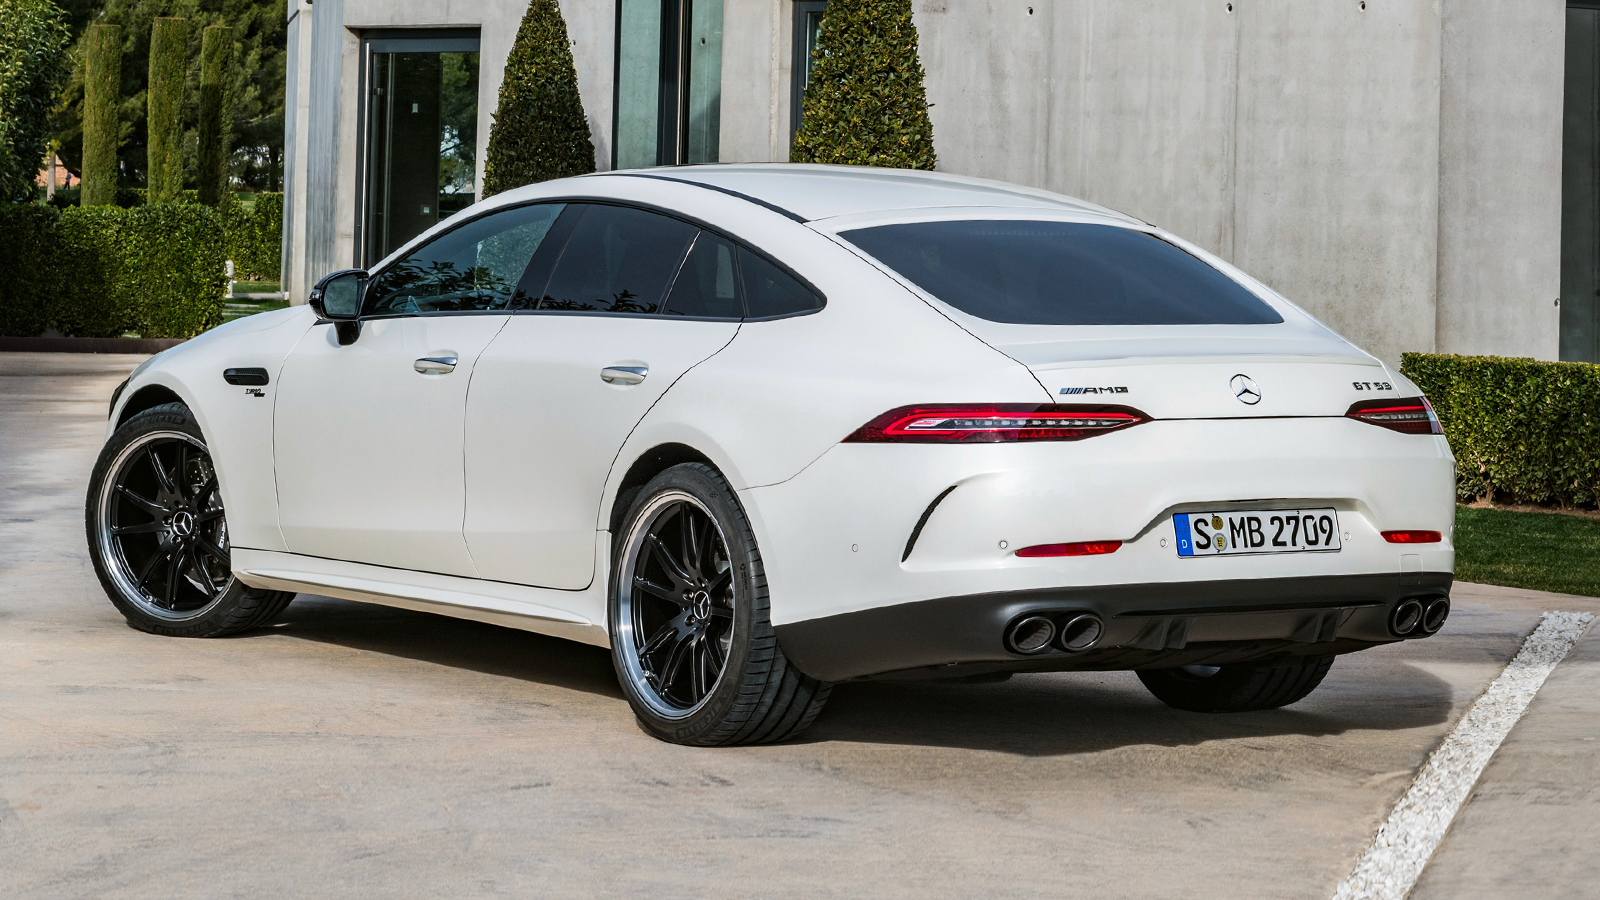 mercedes-amg_gt_53_4matic_4-door_coupe_19